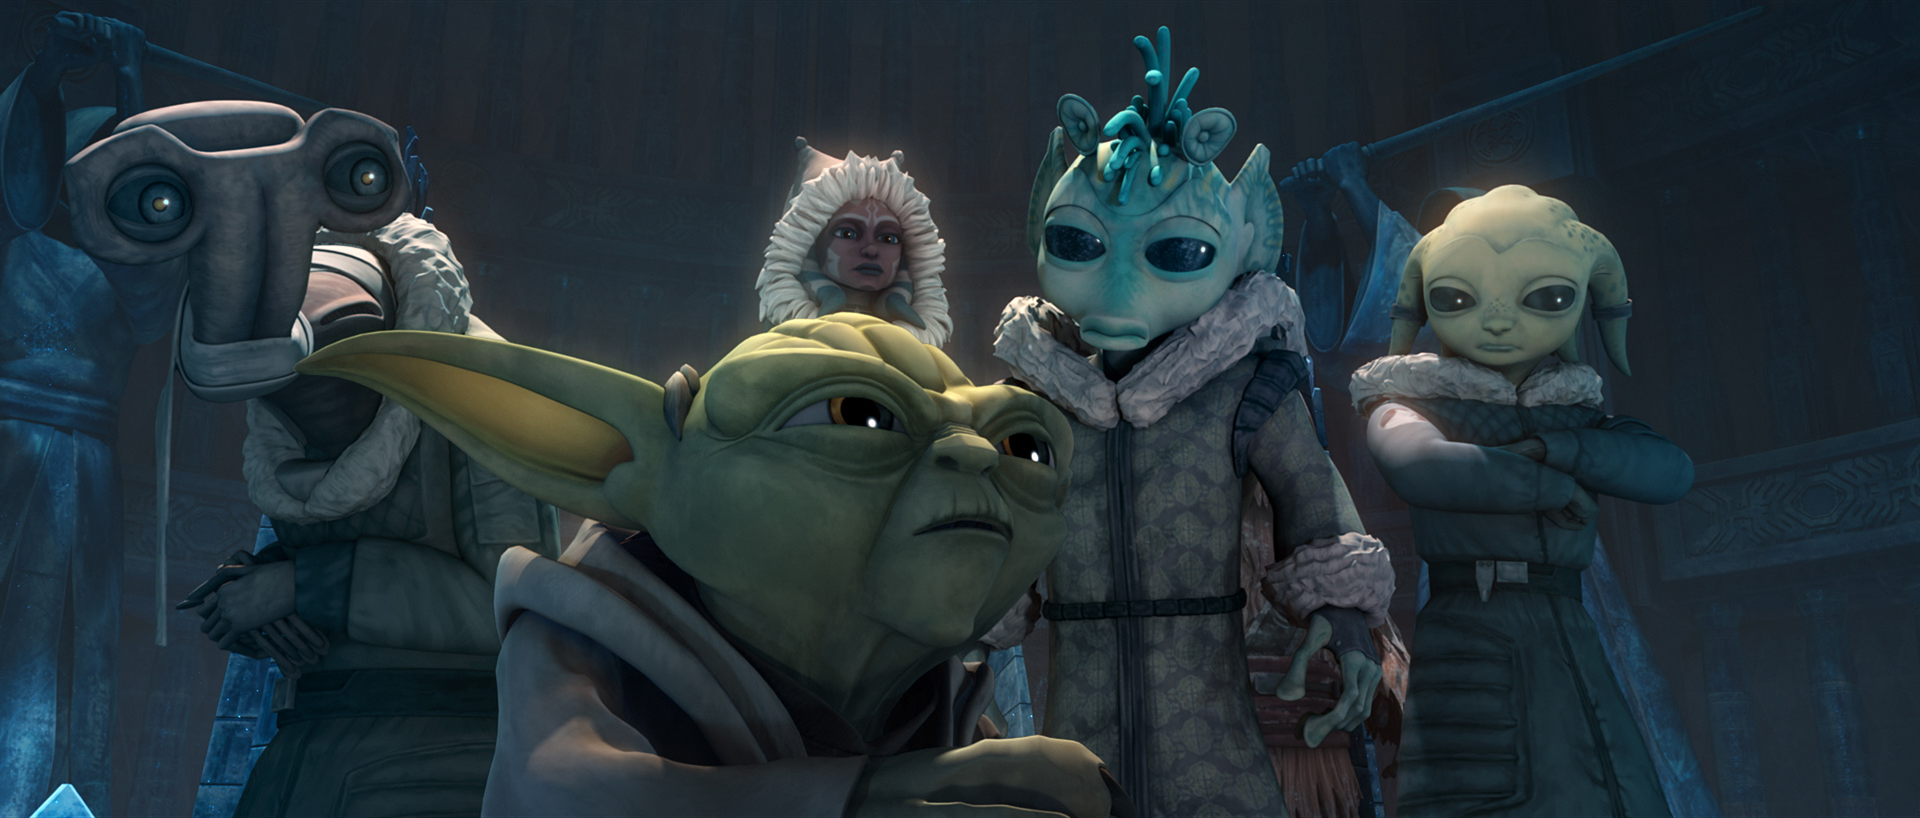 The Gathering Clone Wars Wookieepedia Fandom For instance, other versions found online involve a promoting system. the gathering clone wars